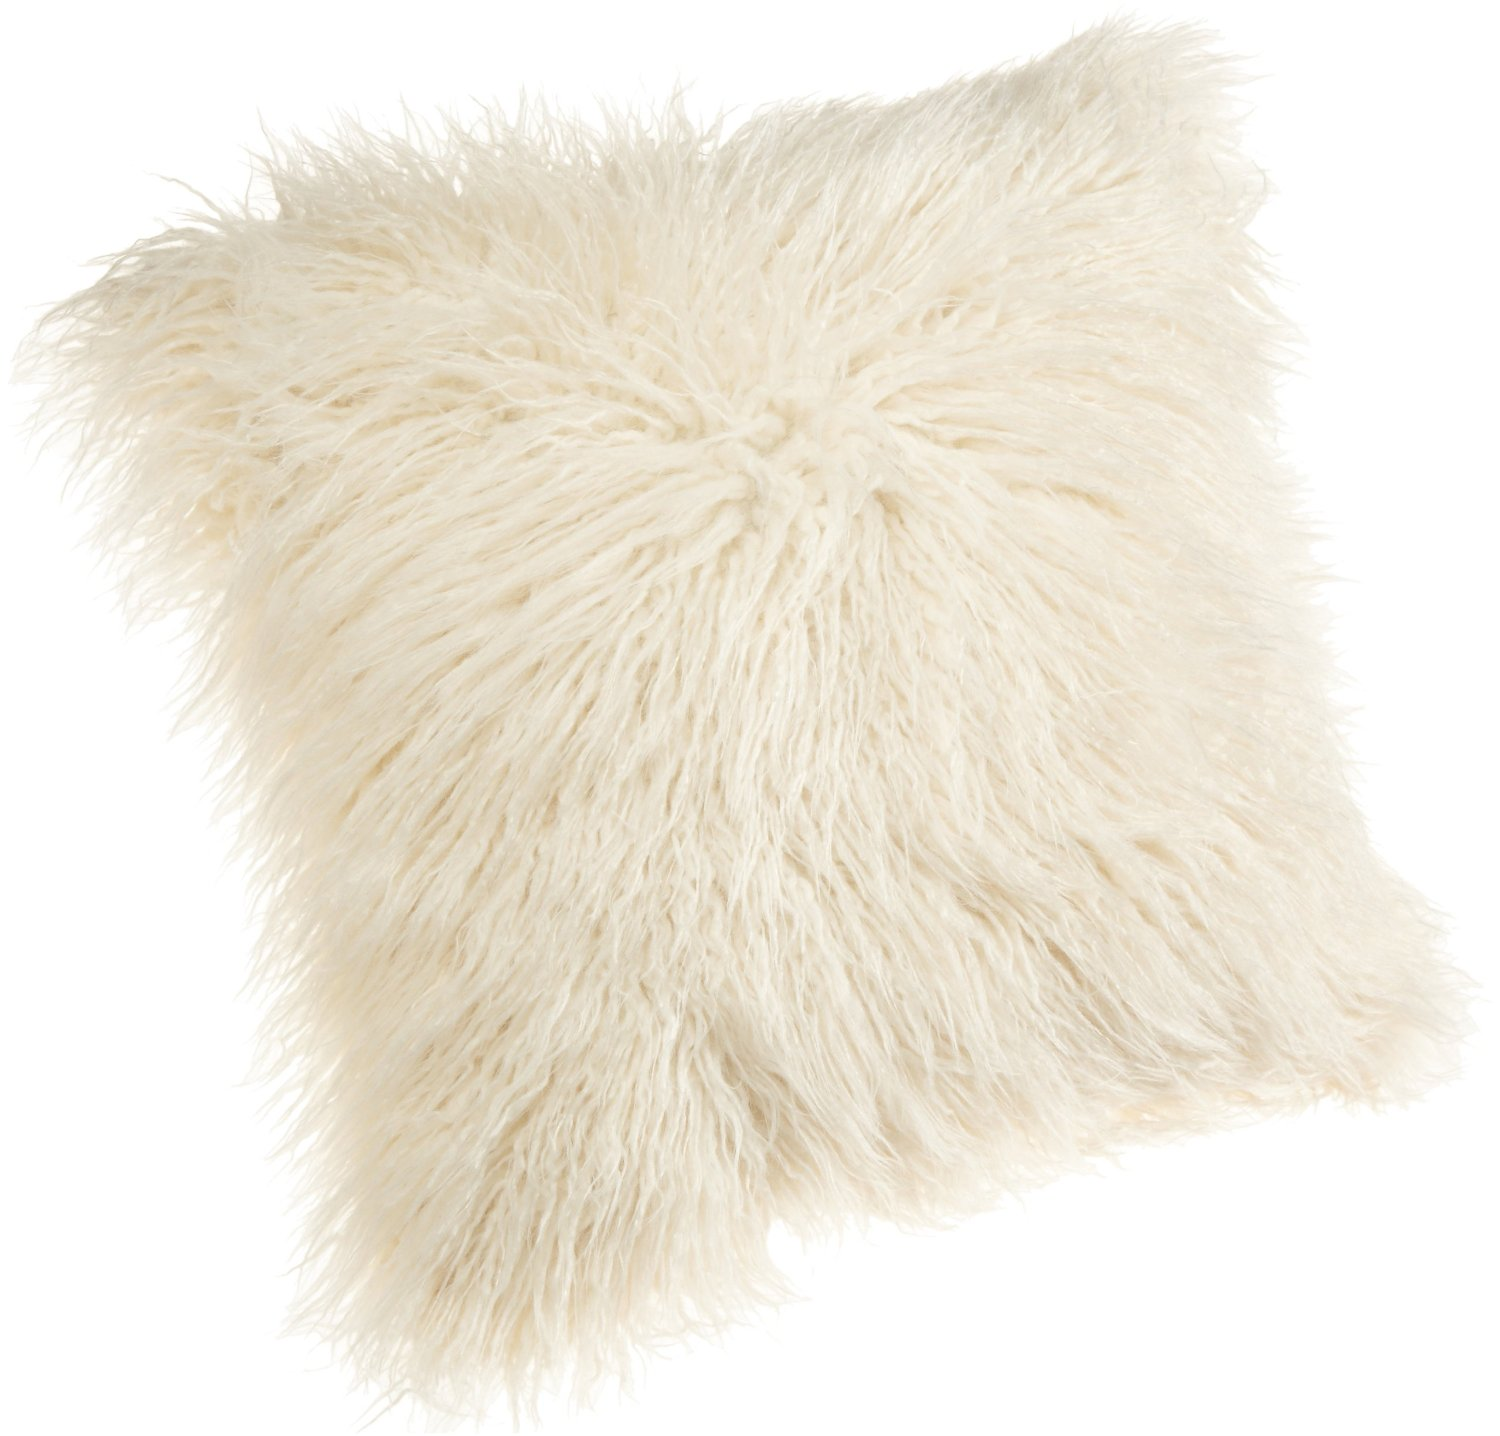 Inch mongolian faux fur pillow, white